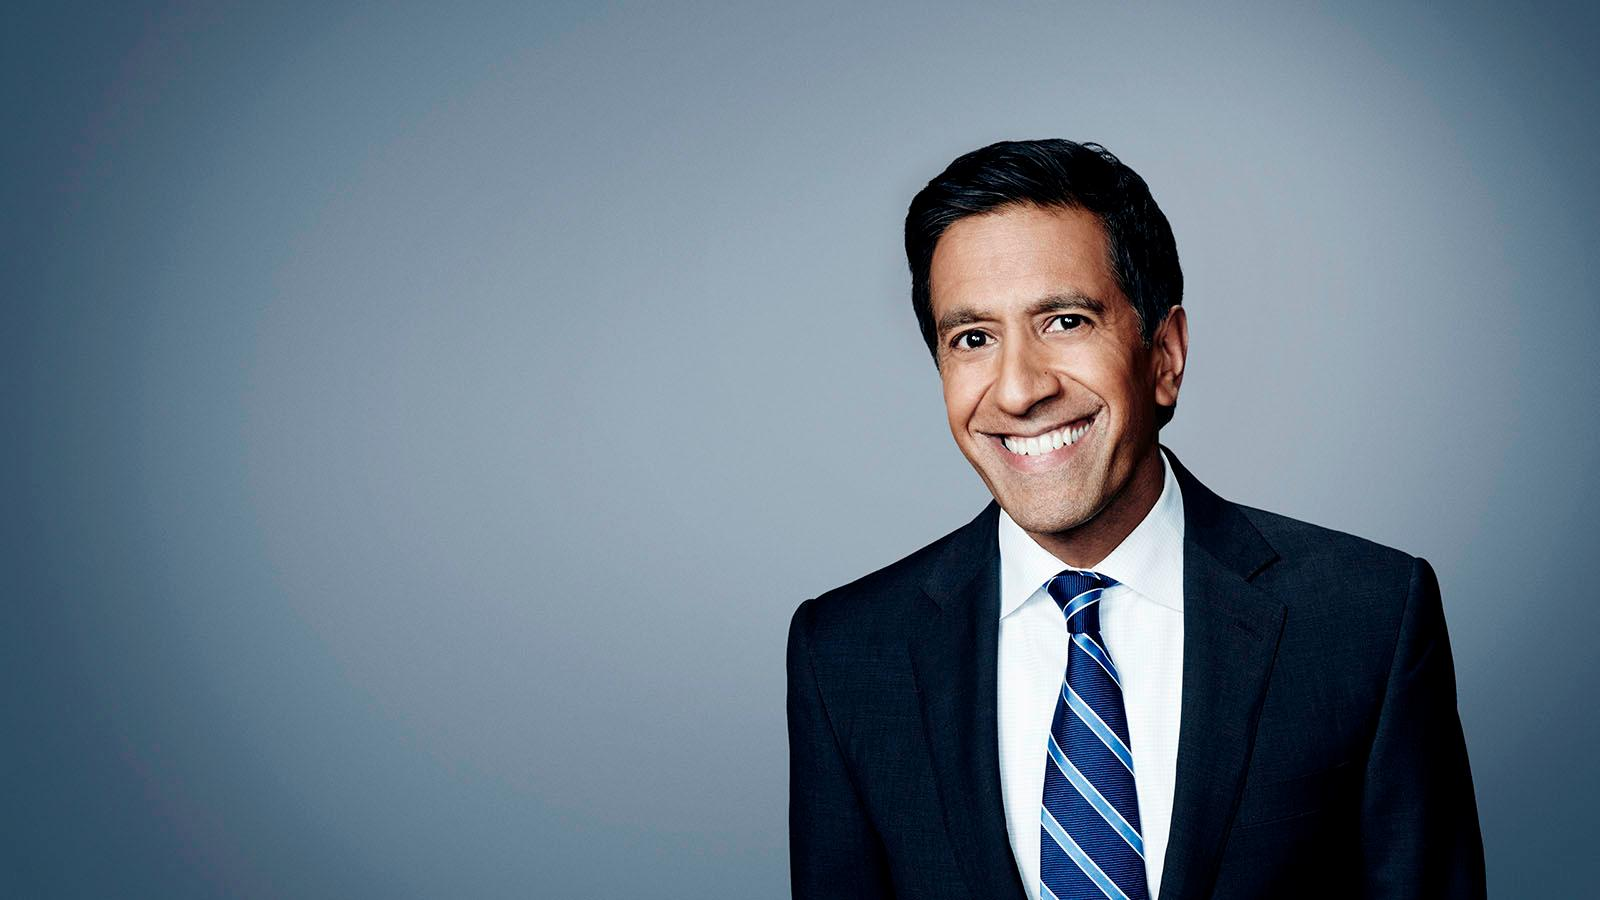 What Are Delusions – Dr. Sanjay Gupta Asks a Psychiatrist Specializing in Schizophrenia